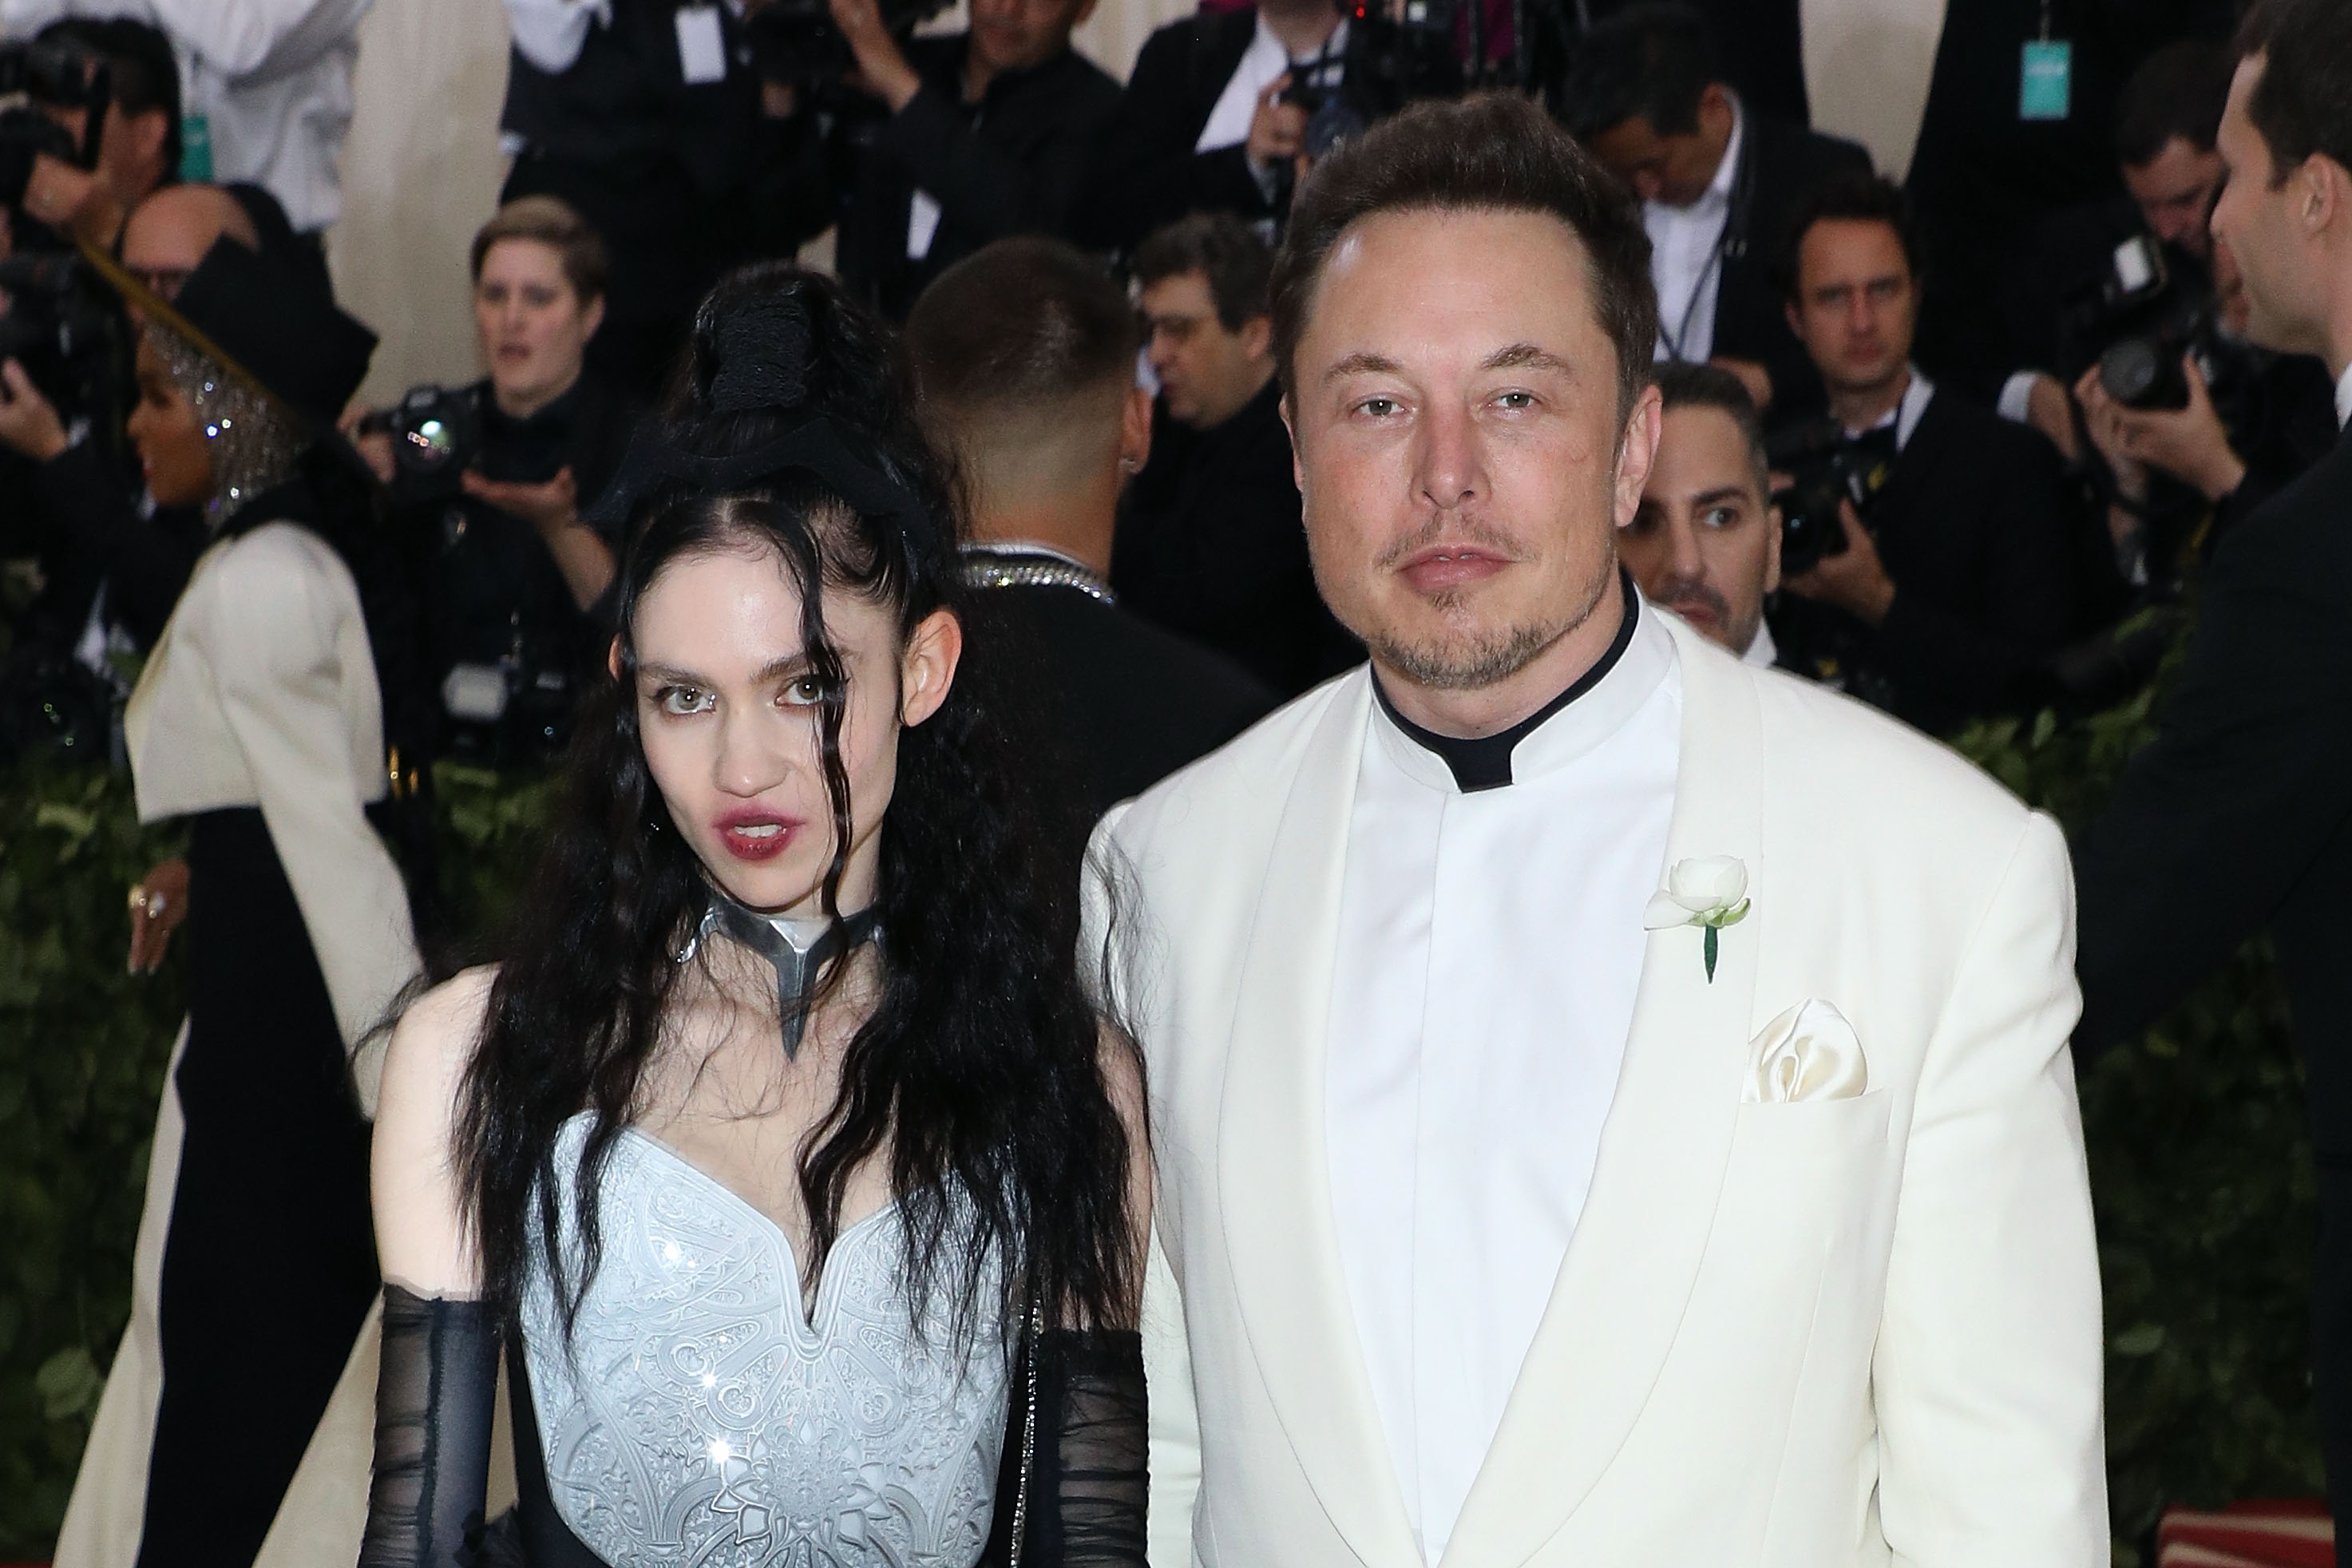 The Six Stages of Learning Grimes Is Dating Elon Musk - VICE